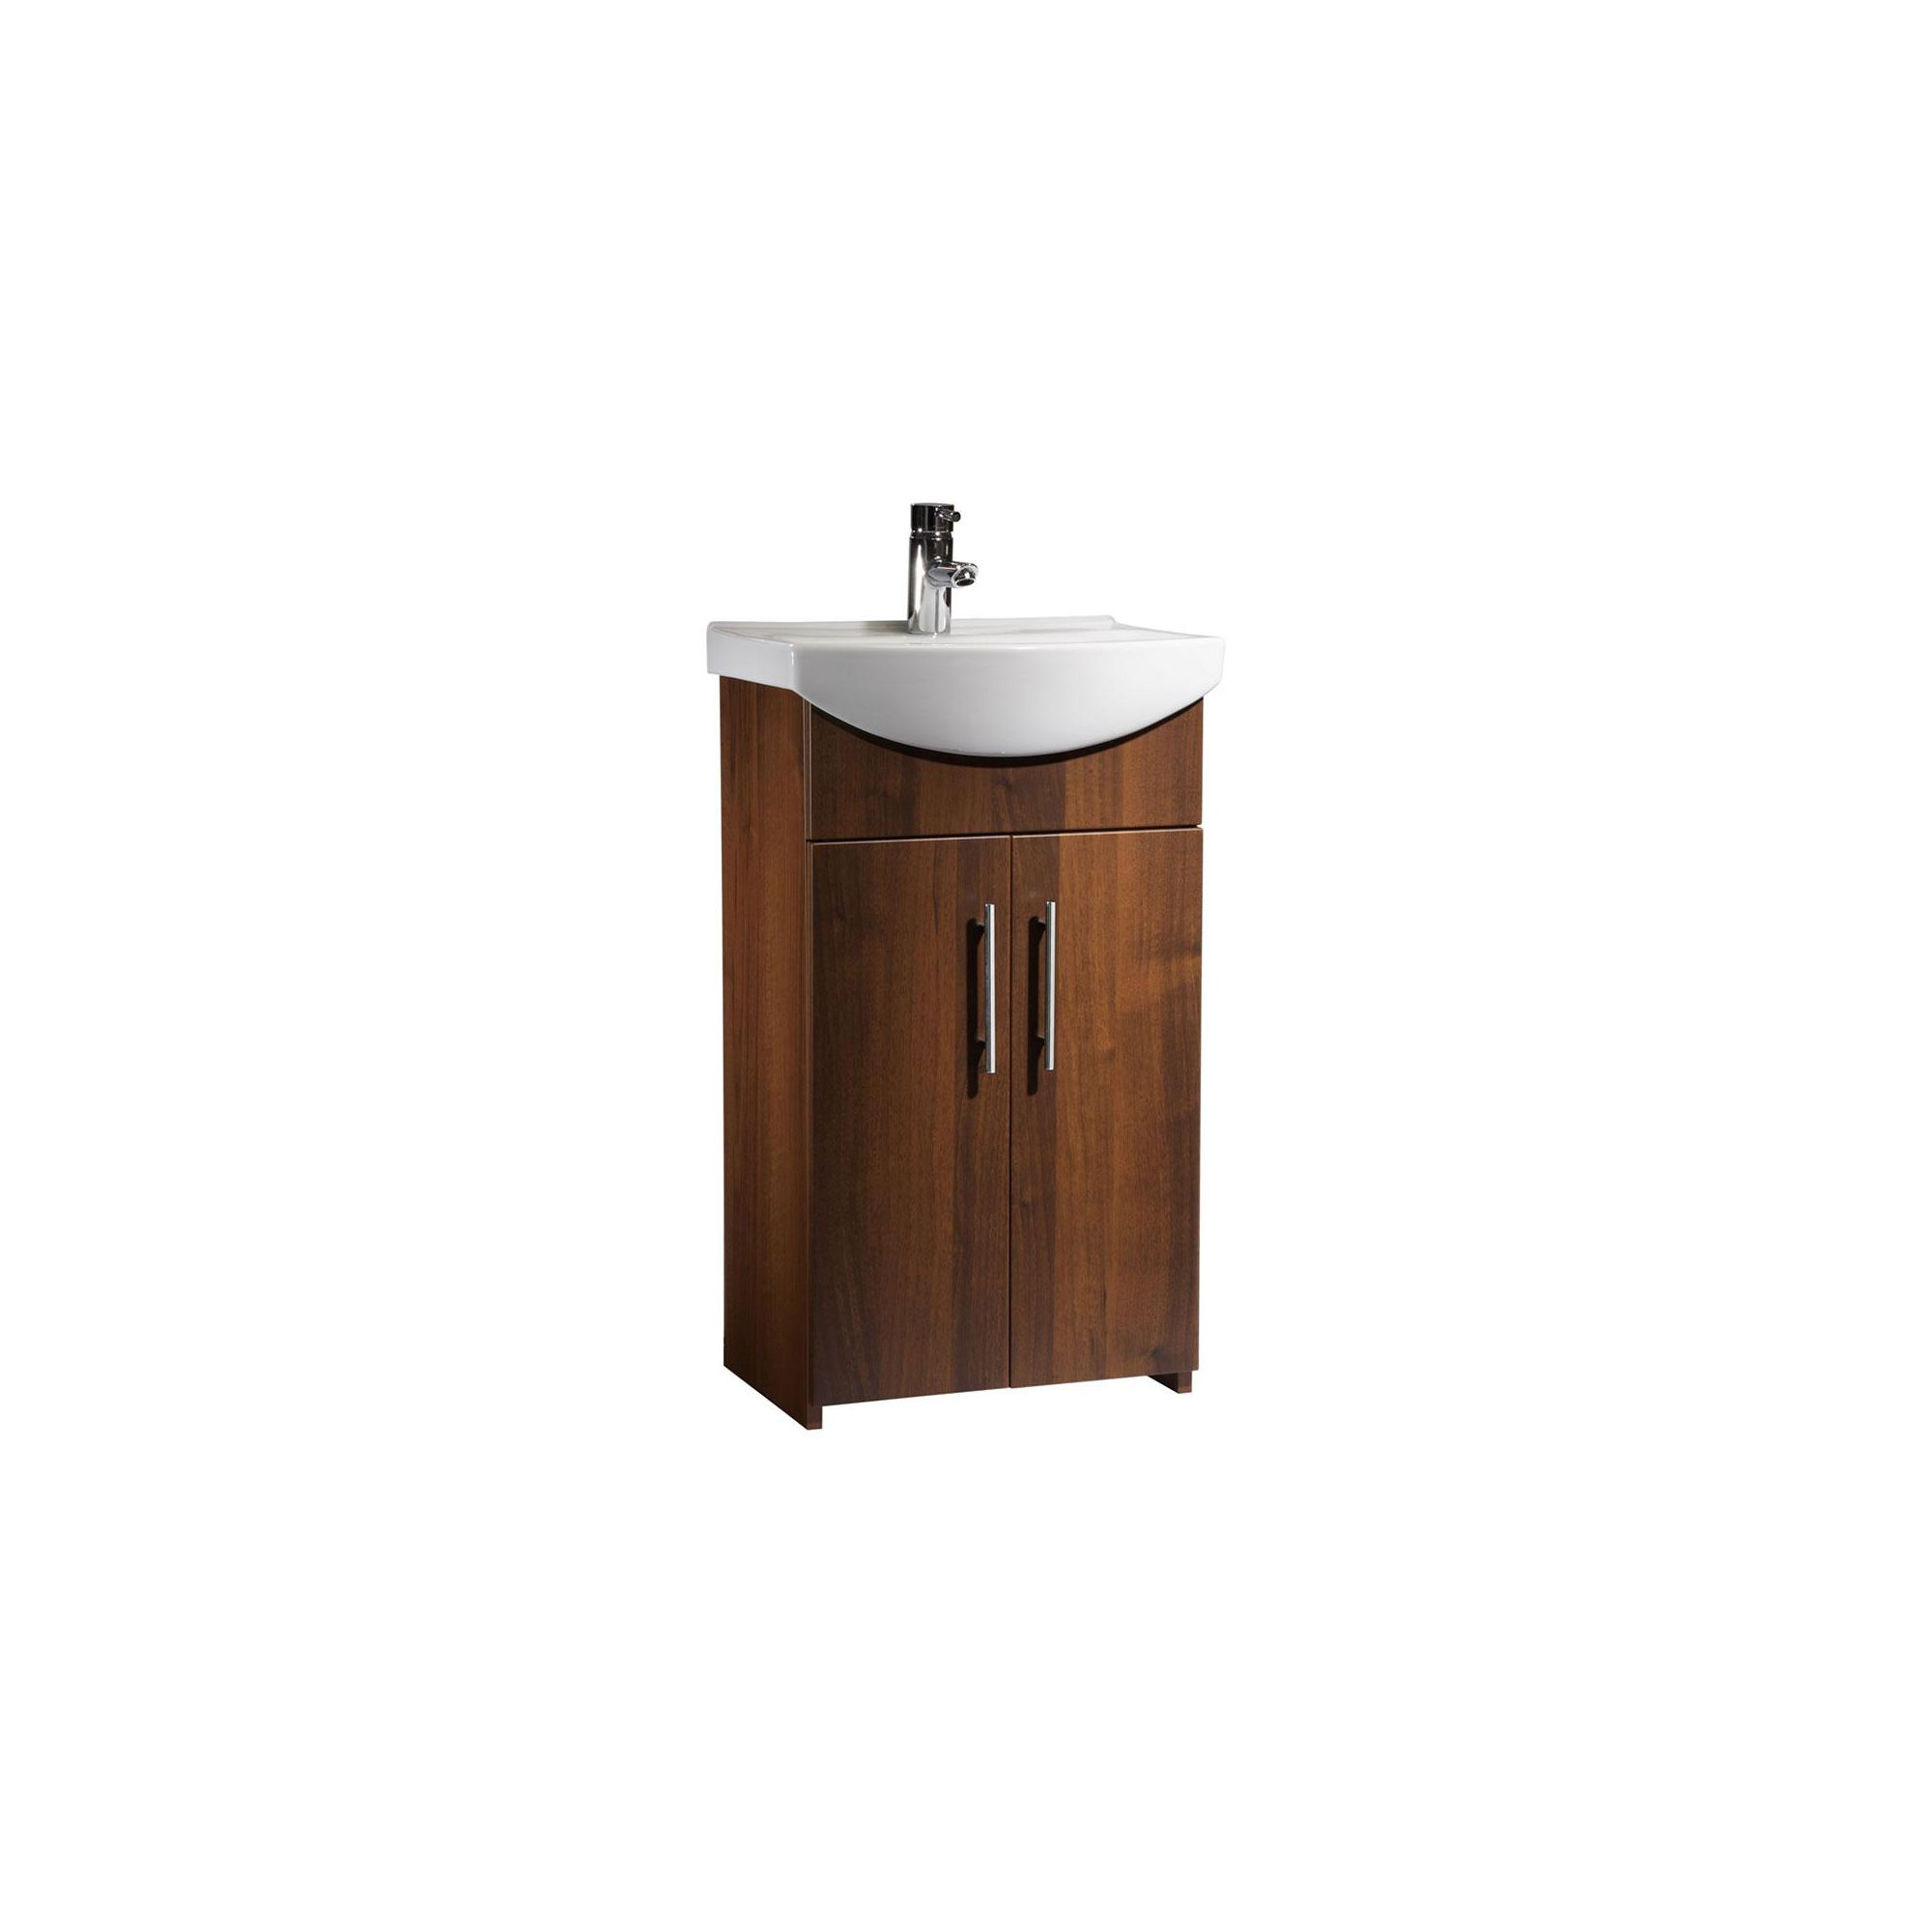 Tavistock Opal Walnut Floor Standing Cabinet and Basin - 1 Tap Hole - 500mm Wide